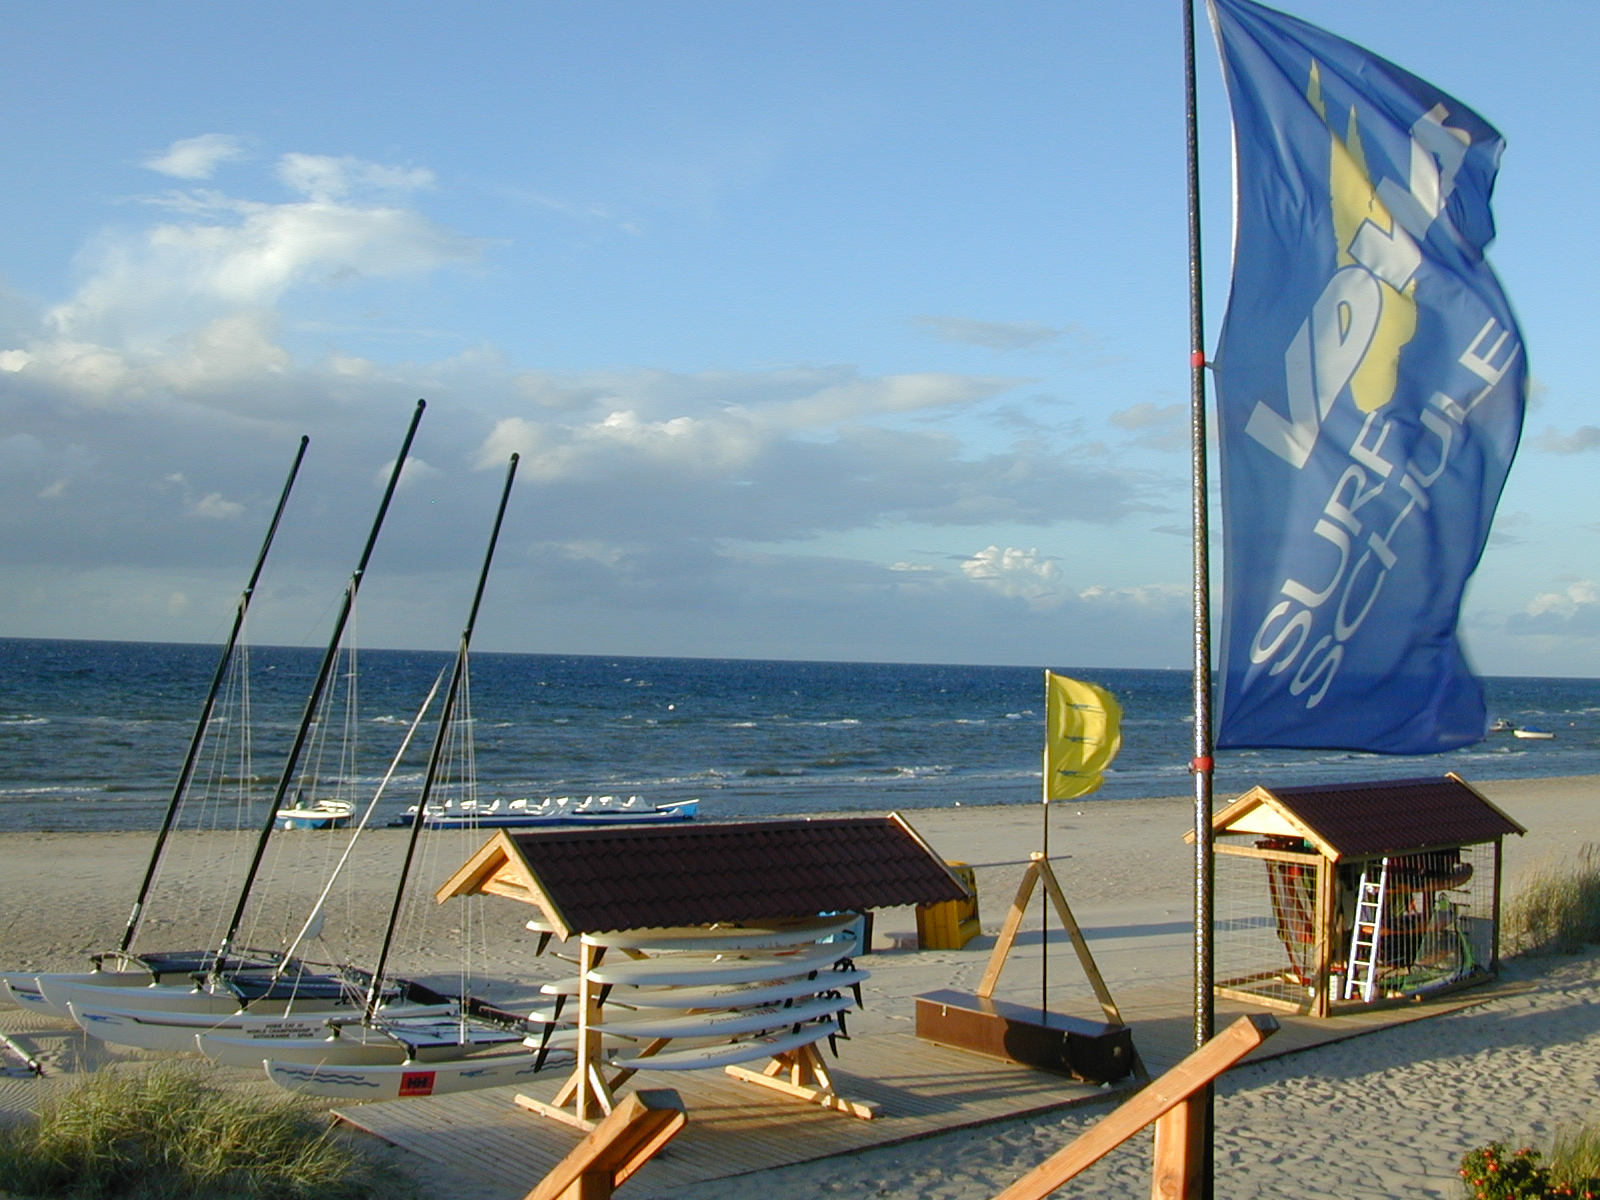 """Our beginnings in Germany in 2001. This image is of """"Nordwind Wassersport"""", our windsurfing and sailing school in Northern Germany. It still operates today."""